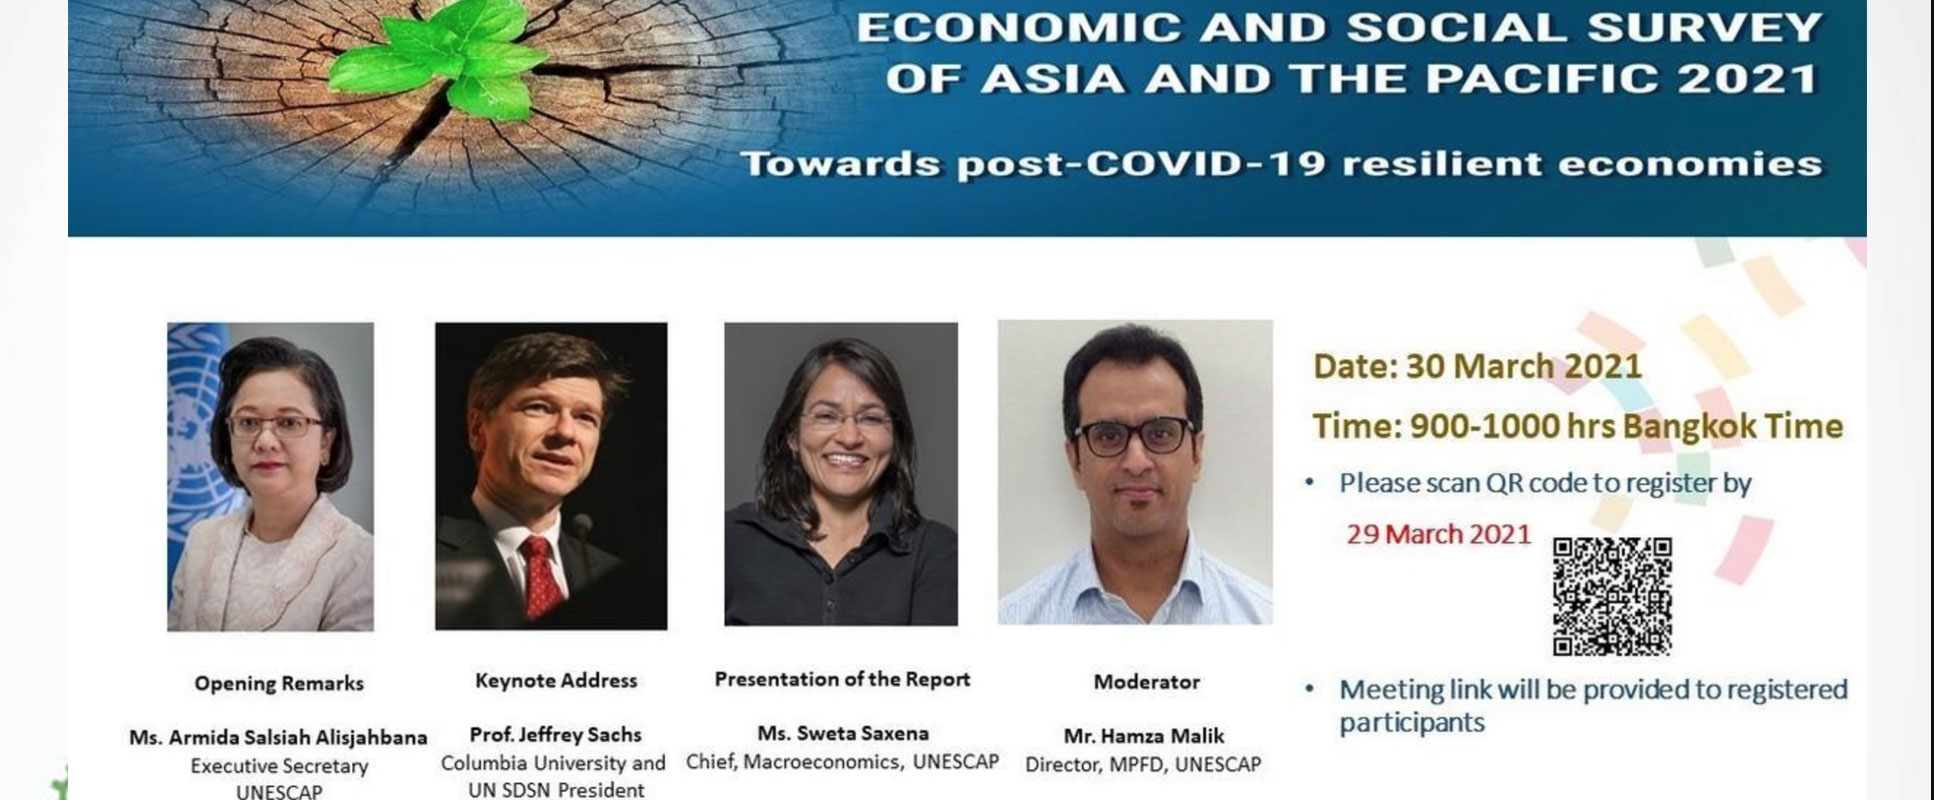 Virtual Launch of the Economic and Social Survey of Asia and the Pacific 2021